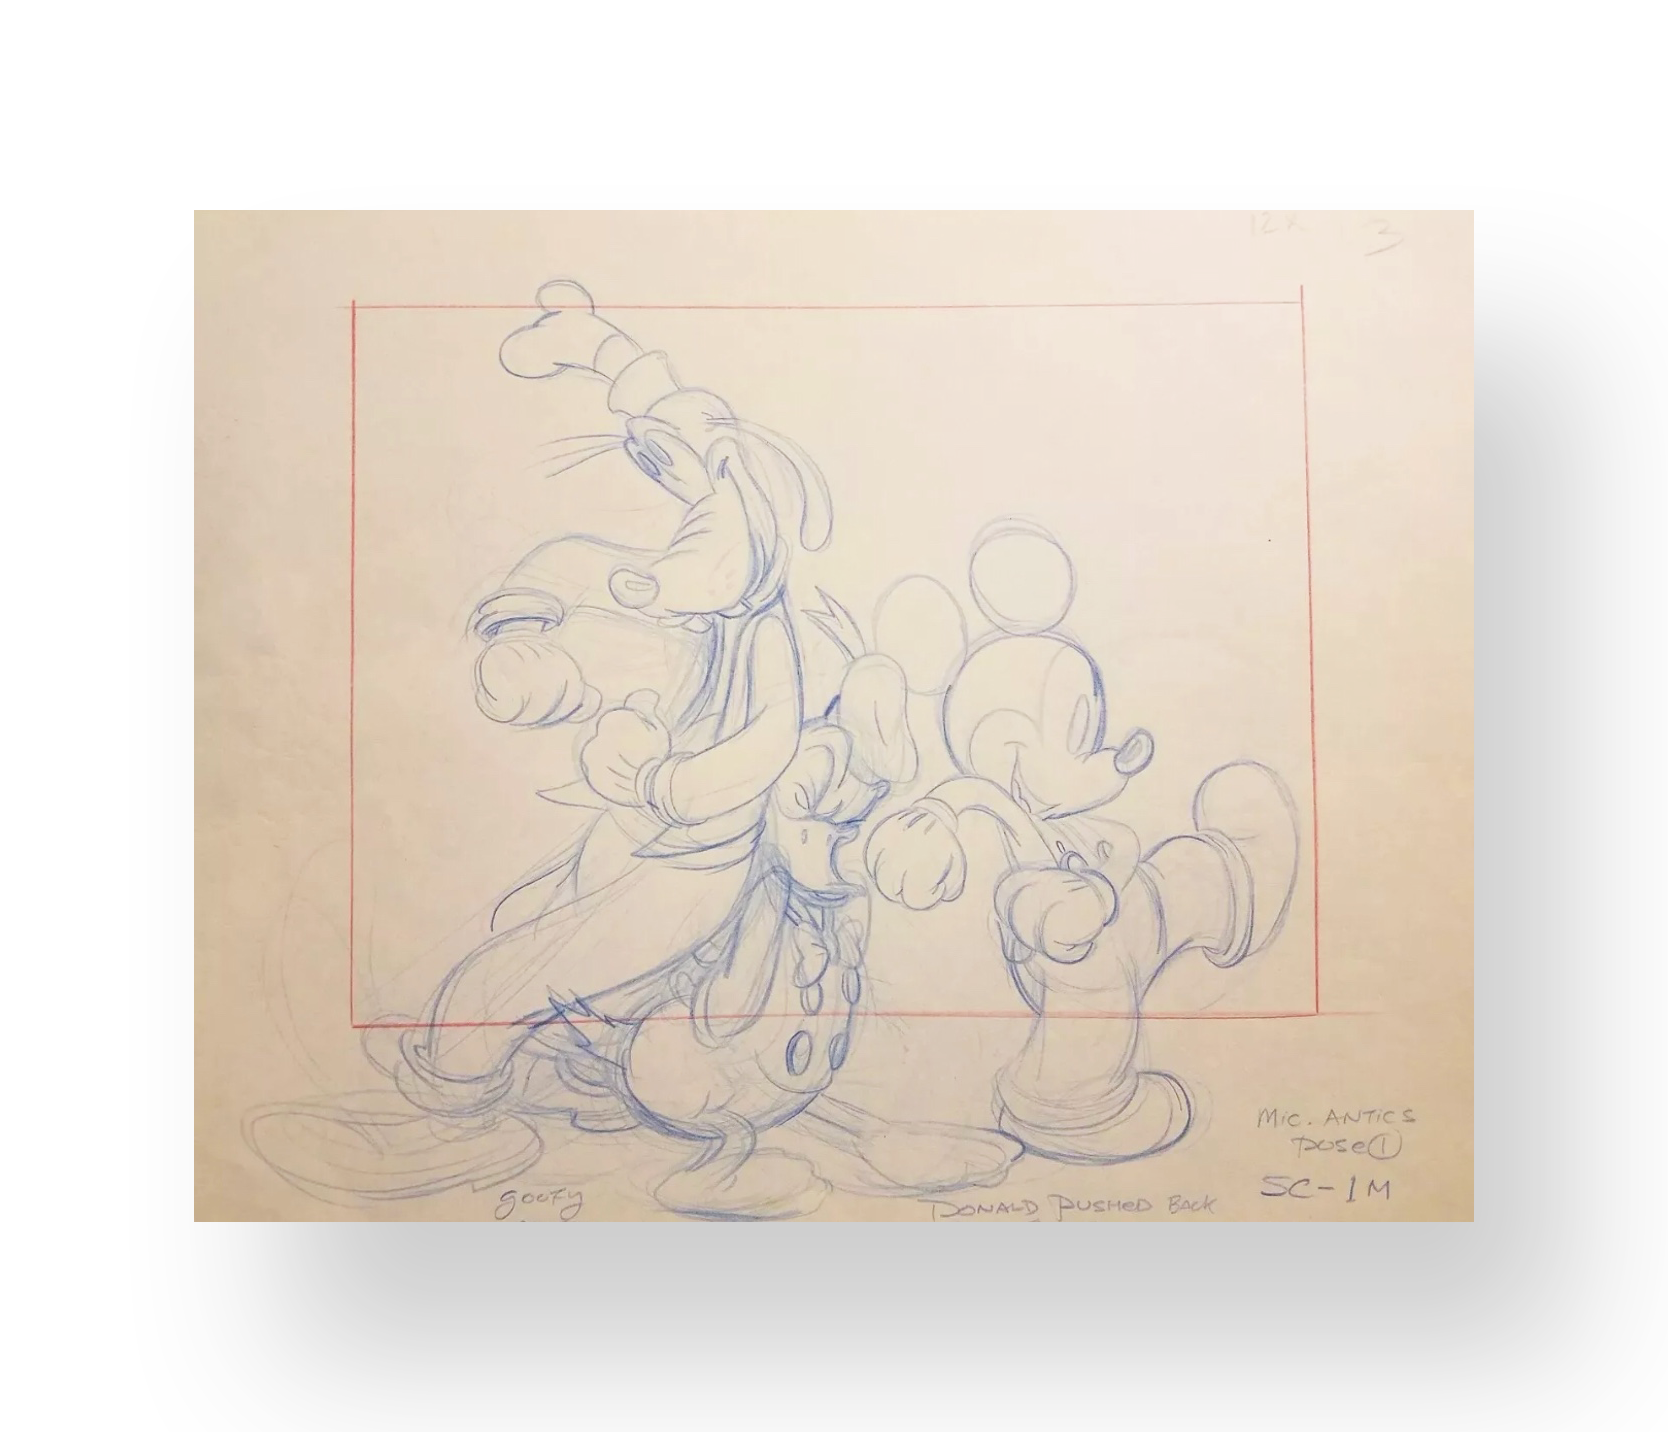 Mickey and Friends  Original Illustration production layout  Graphite and color pencil on animation paper  10.5 x 12 inches  Late 1960's  Walt Disney Studios